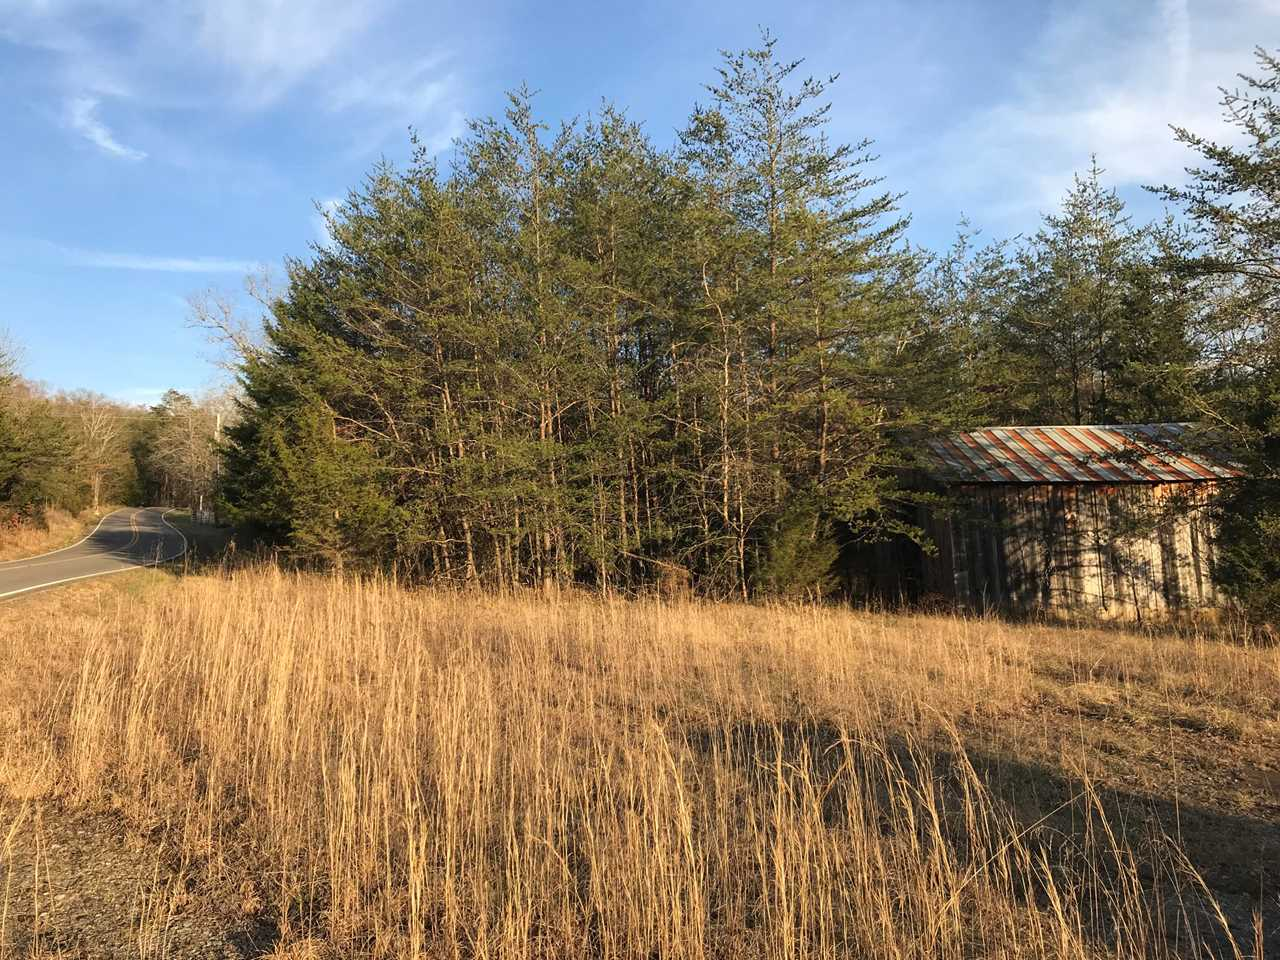 Old Flynns Cove Crossville TN 38572 in  | MLS 1073073 - GreatLifeRE.com Photo 1